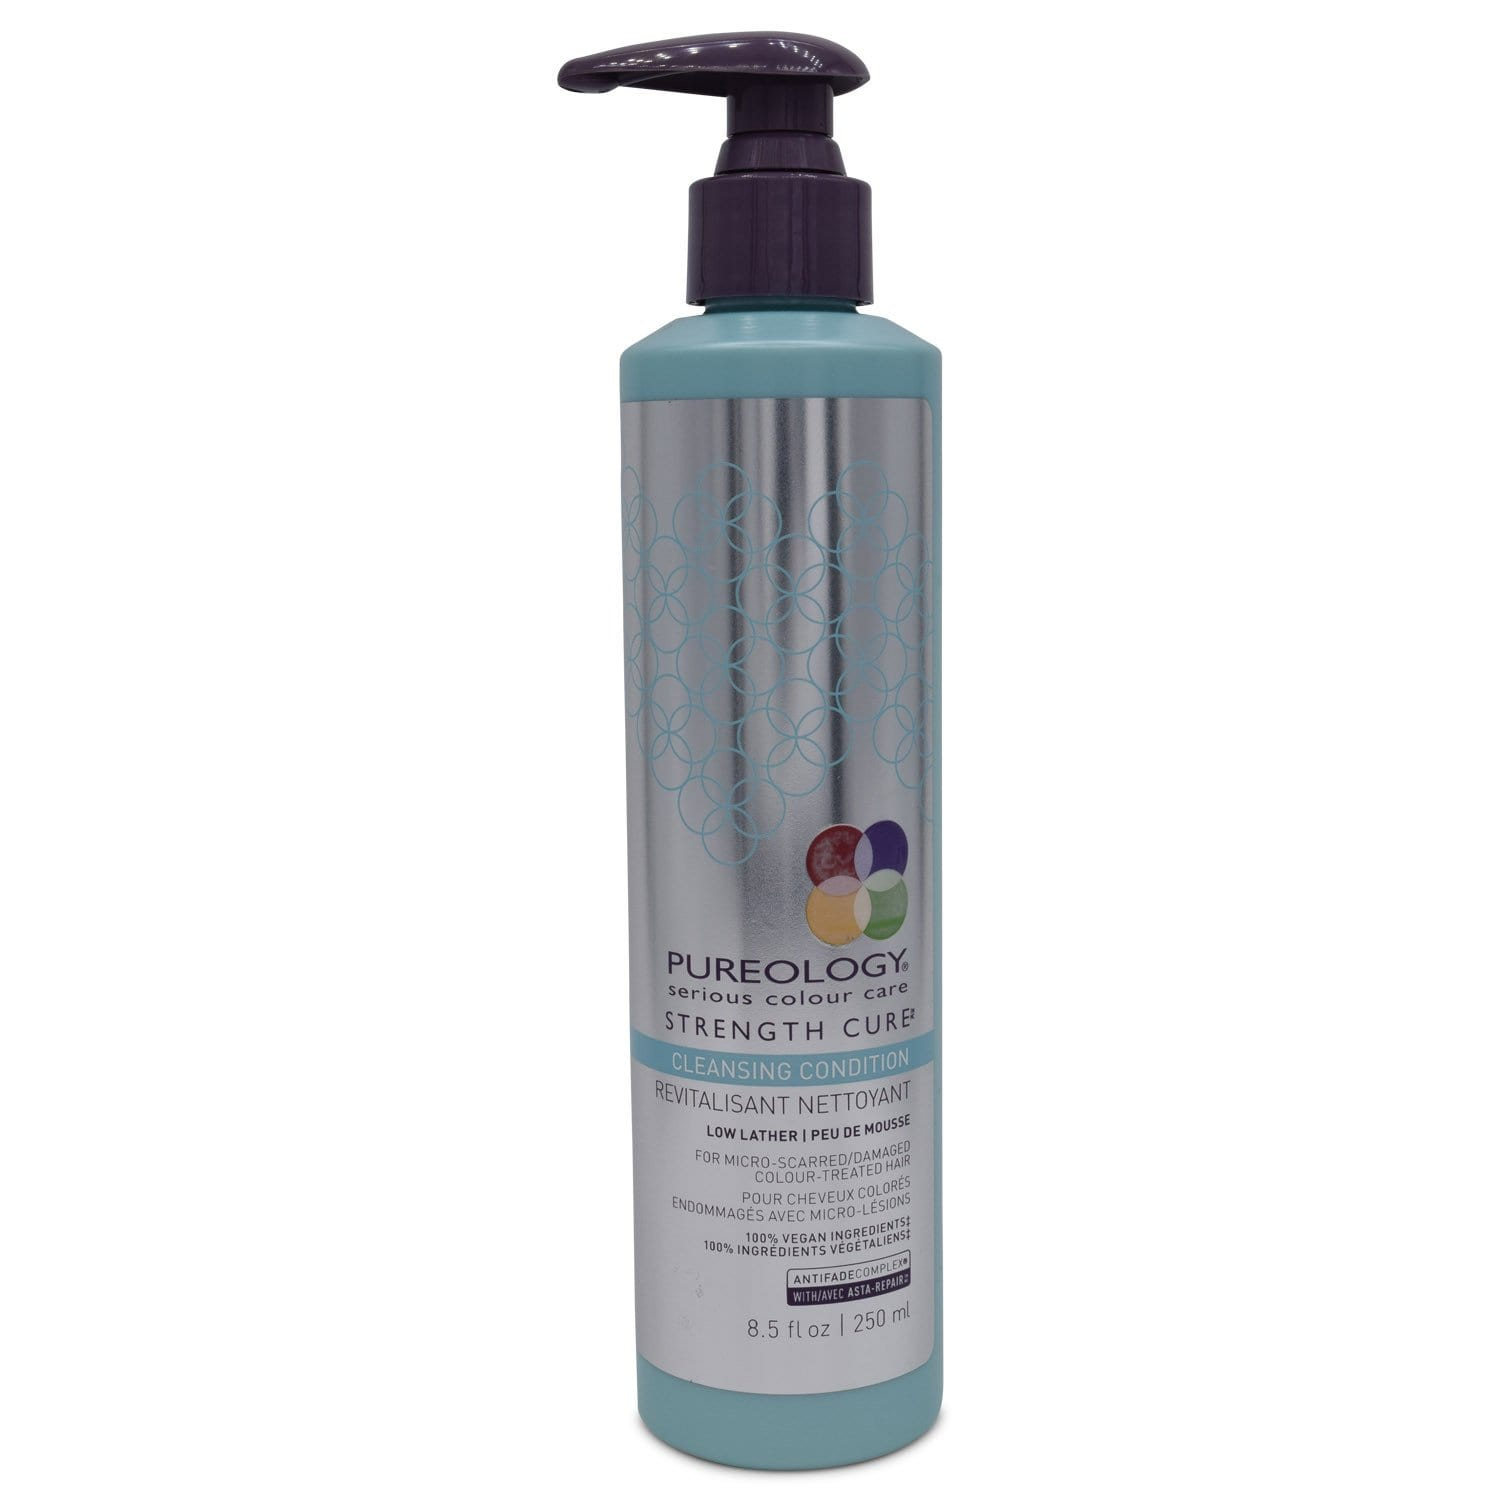 Pureology Strength Cure Cleansing Condition 8.5 oz.